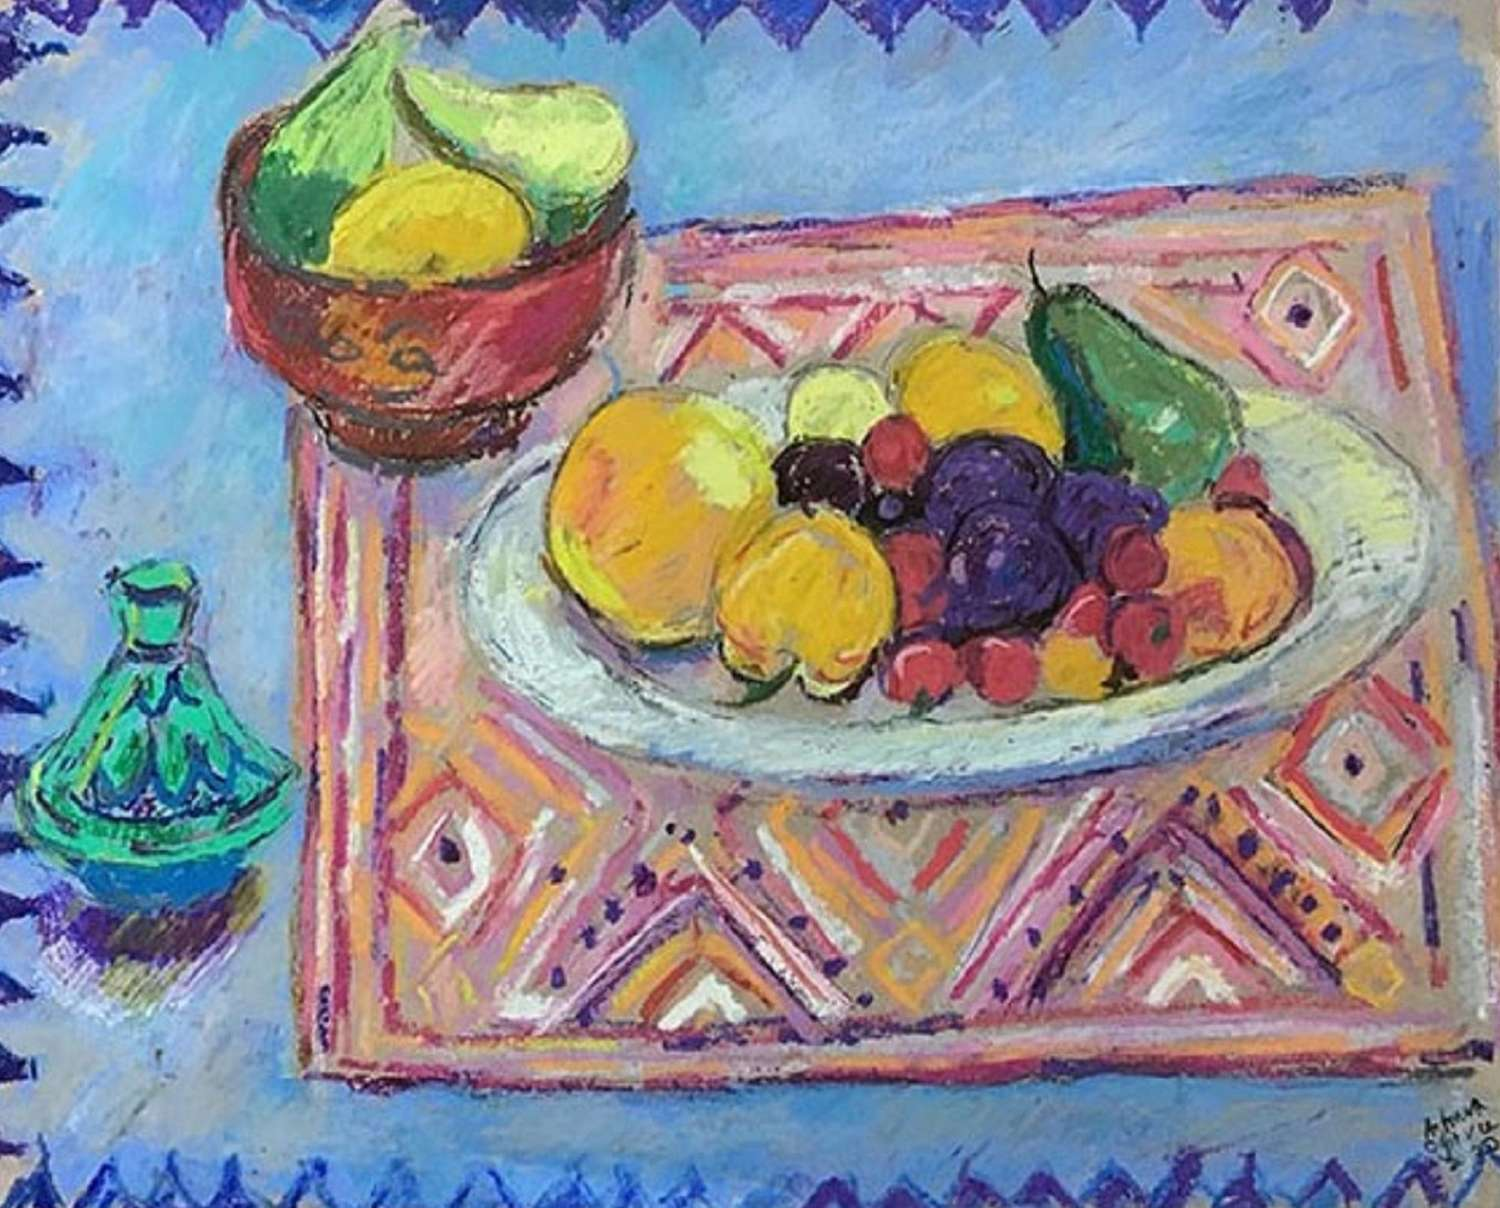 Antonia Ogilvie-Forbes. Fruit on patterned textiles.